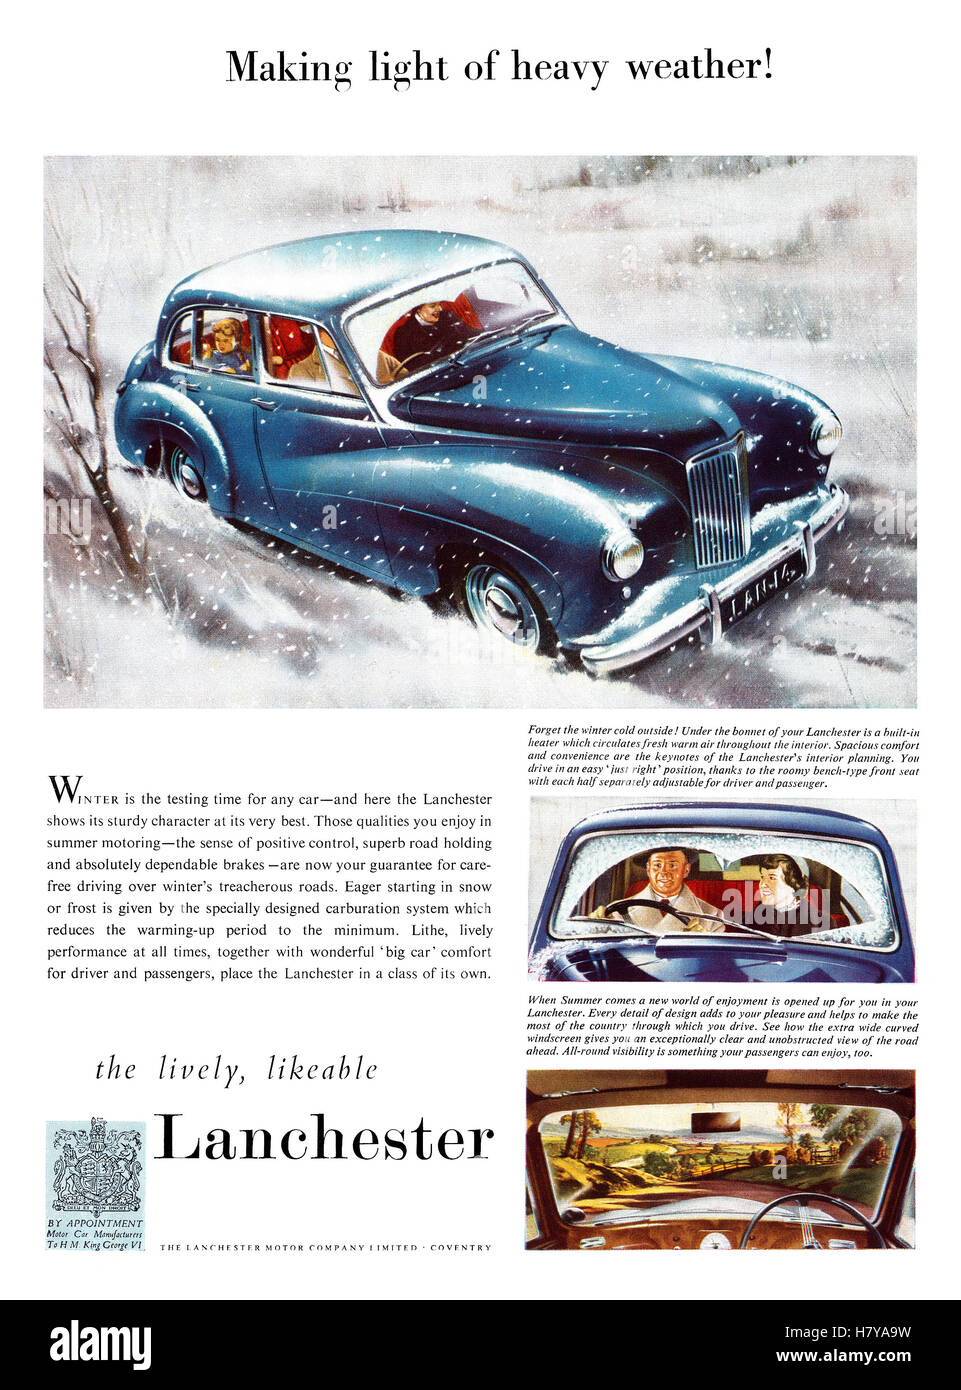 Lanchester Leda and Spite - the latest company cars